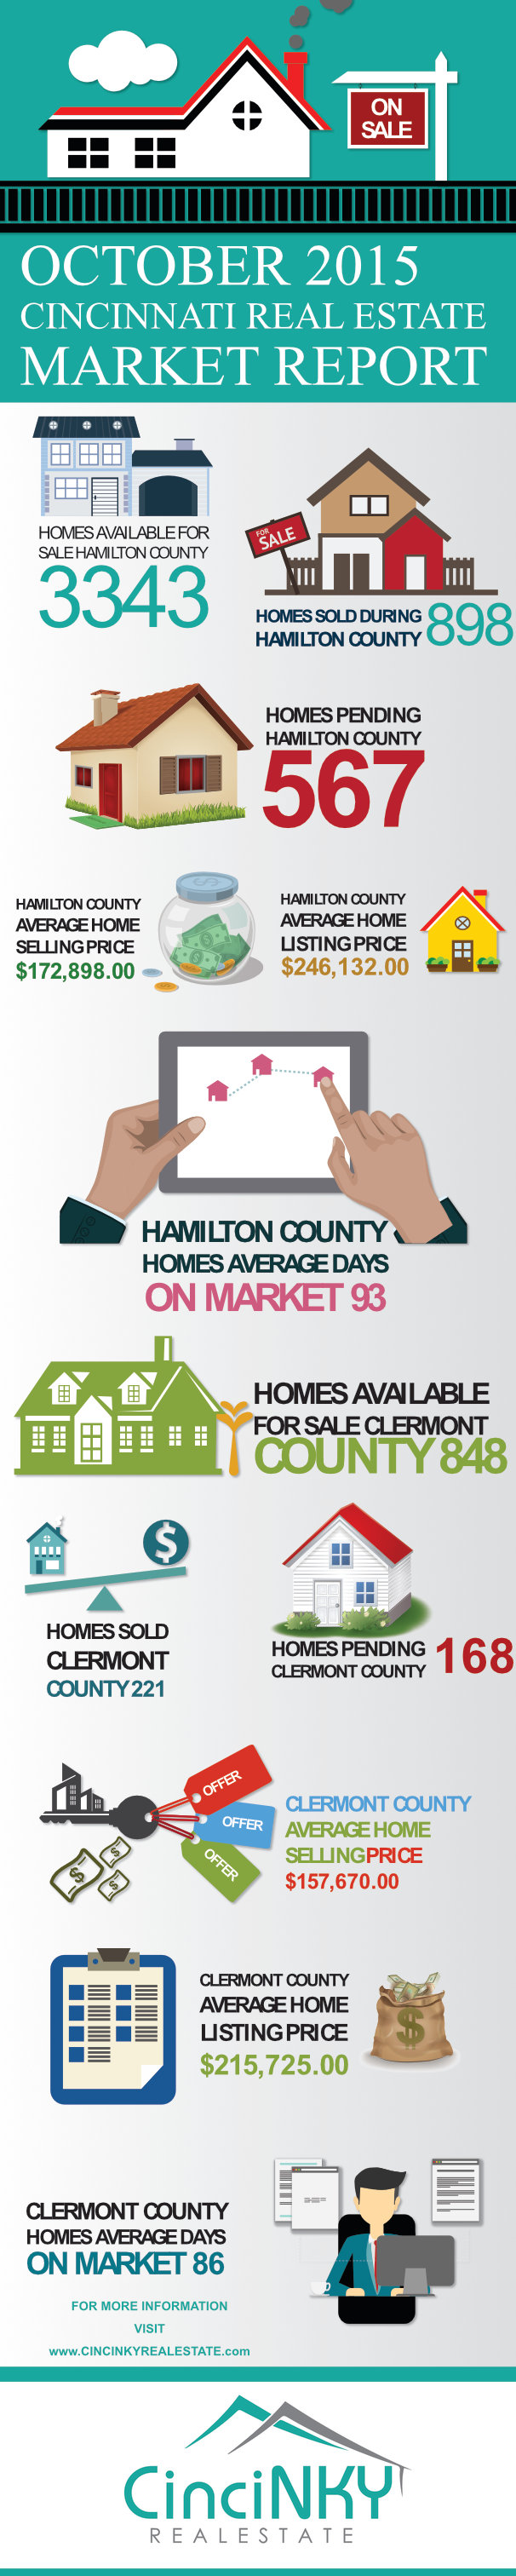 Cincinnati, Ohio October 2015 Real Estate Market Report Infographic